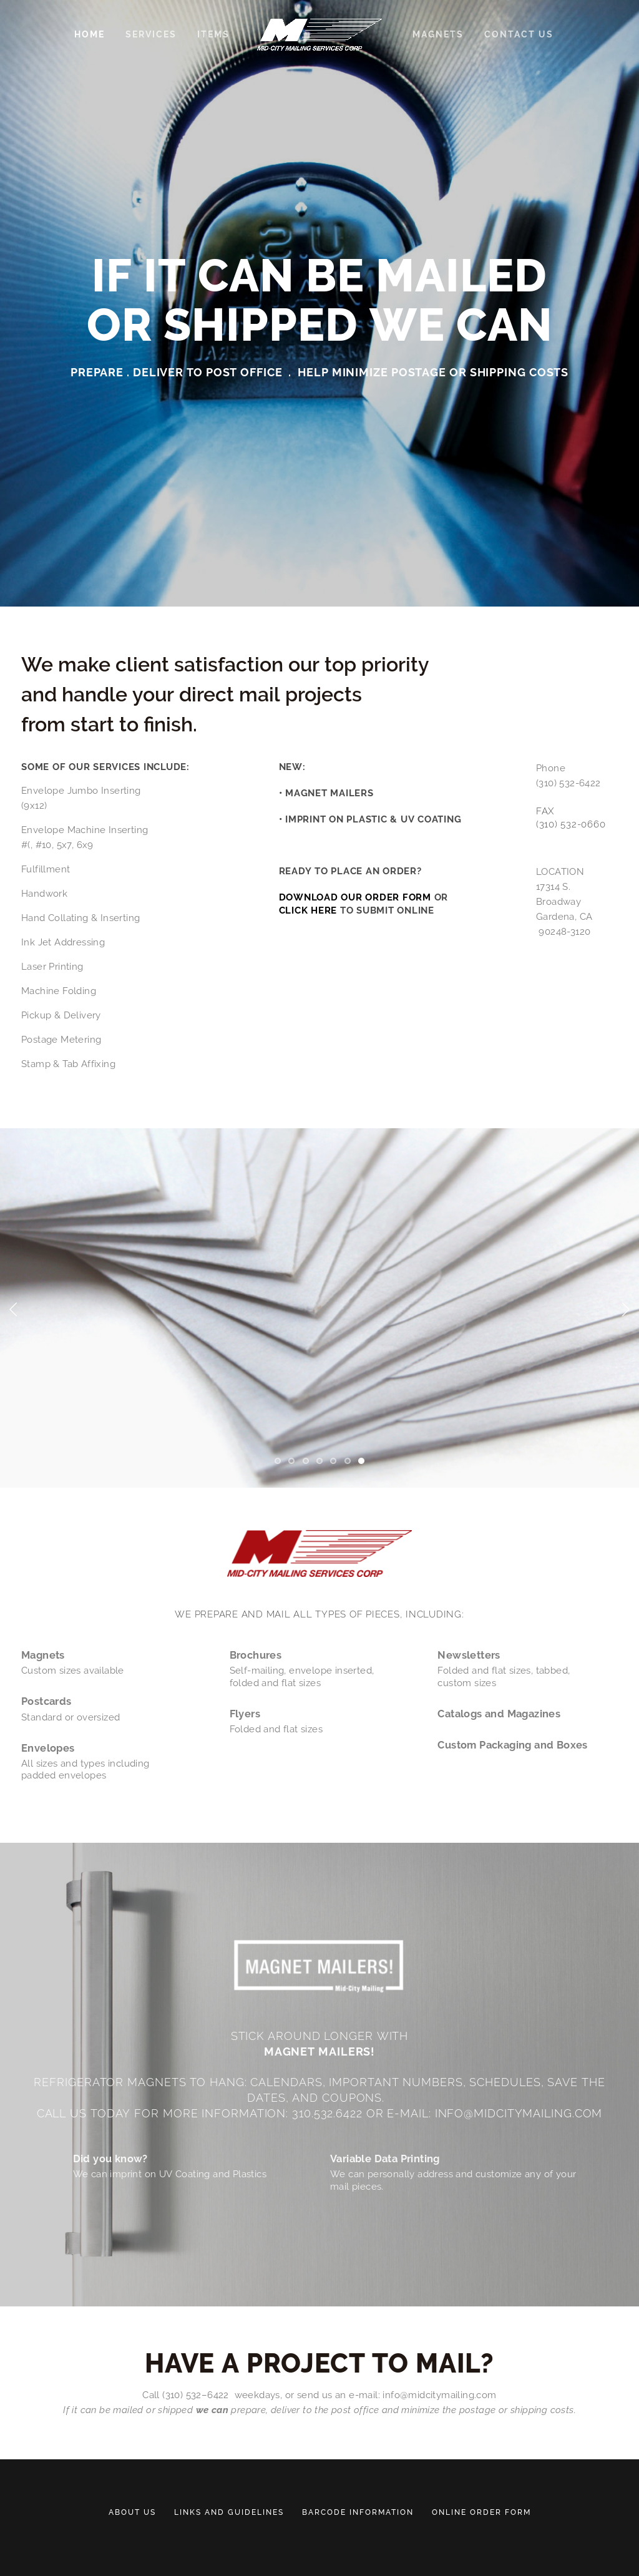 Mid-city Mailing Services Competitors, Revenue and Employees